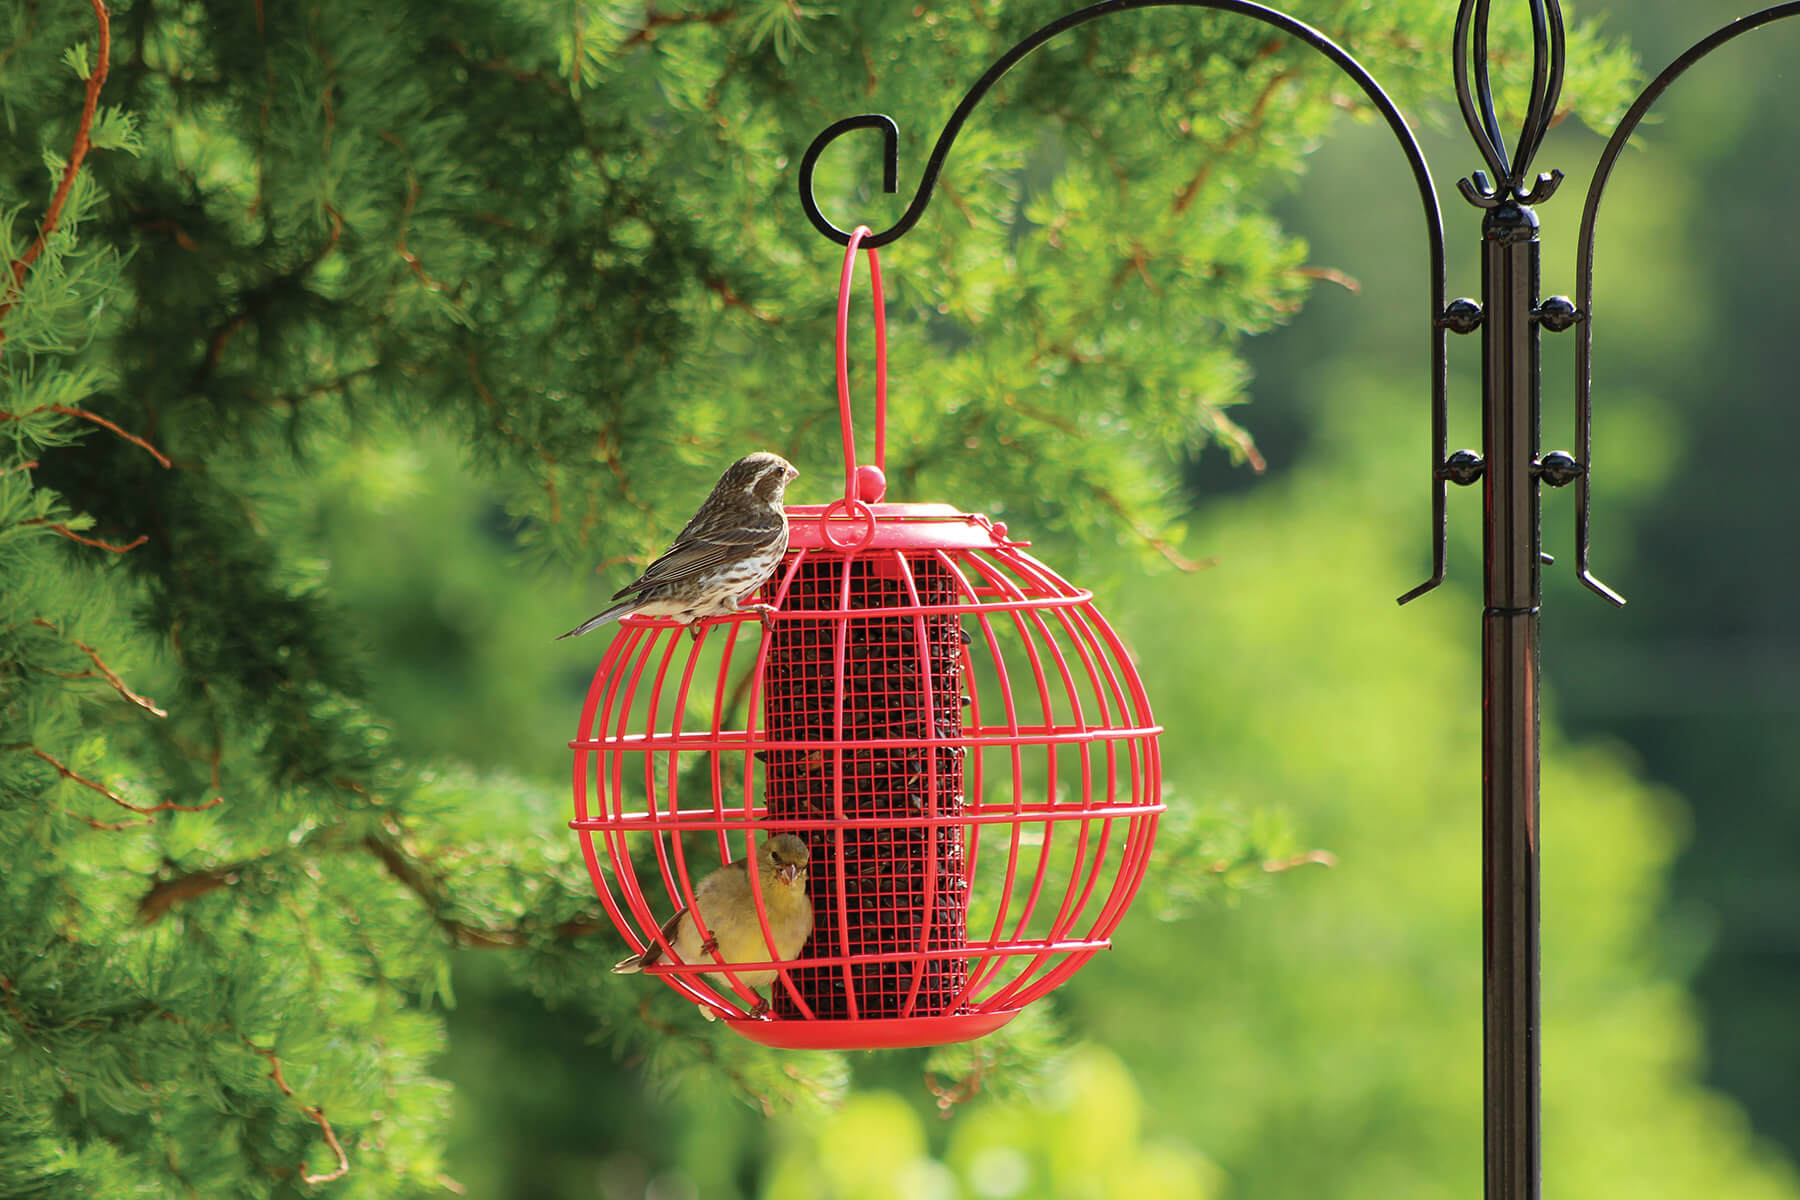 10384 Pinebush Globe Blackoil Peanut Feeder Squirrel Resistant Finch Grosbeak